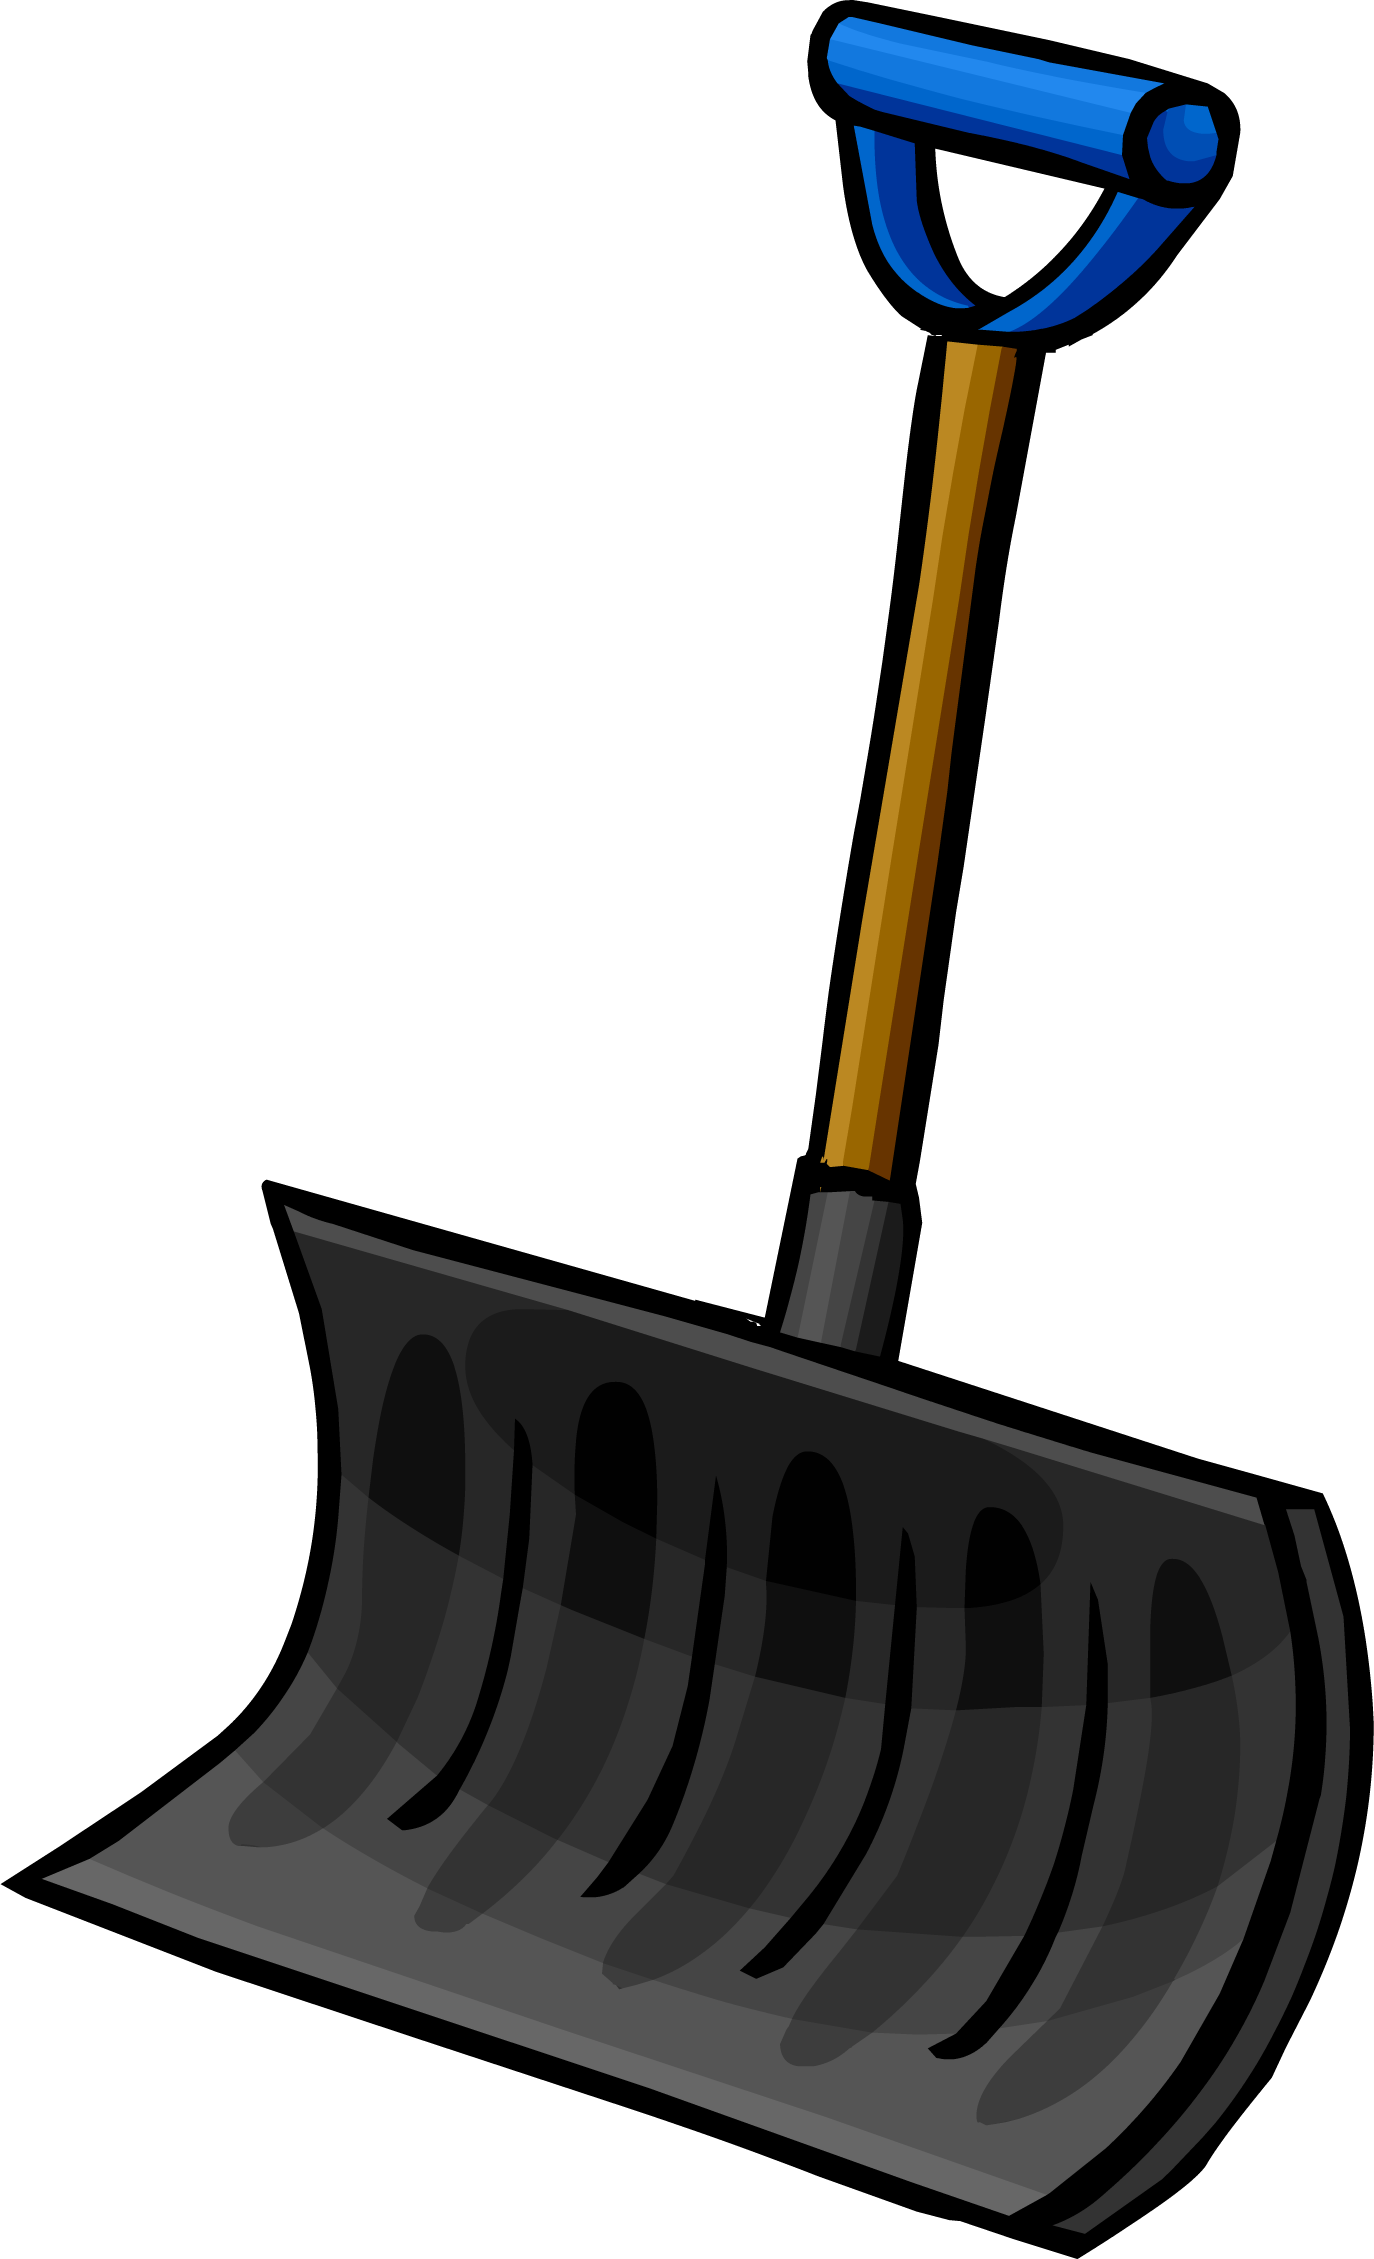 Blizzard clipart snow shoveling. Shovel club penguin wiki